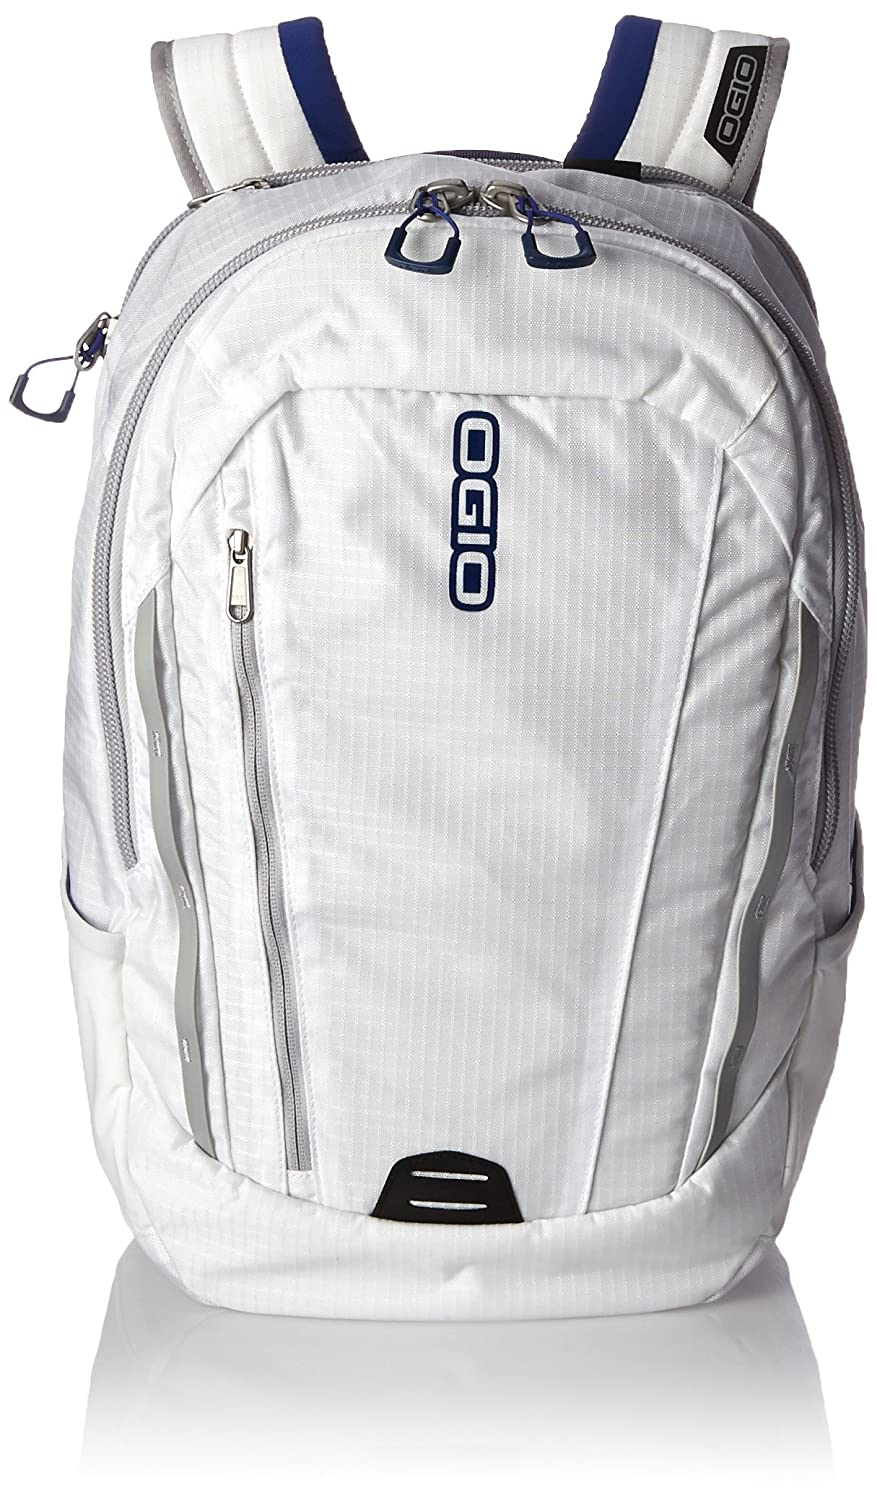 Ogio Lifestyle 2015 Apollo 15 White/Navy Mochila Tipo Casual, 30 litros: Amazon.es: Zapatos y complementos